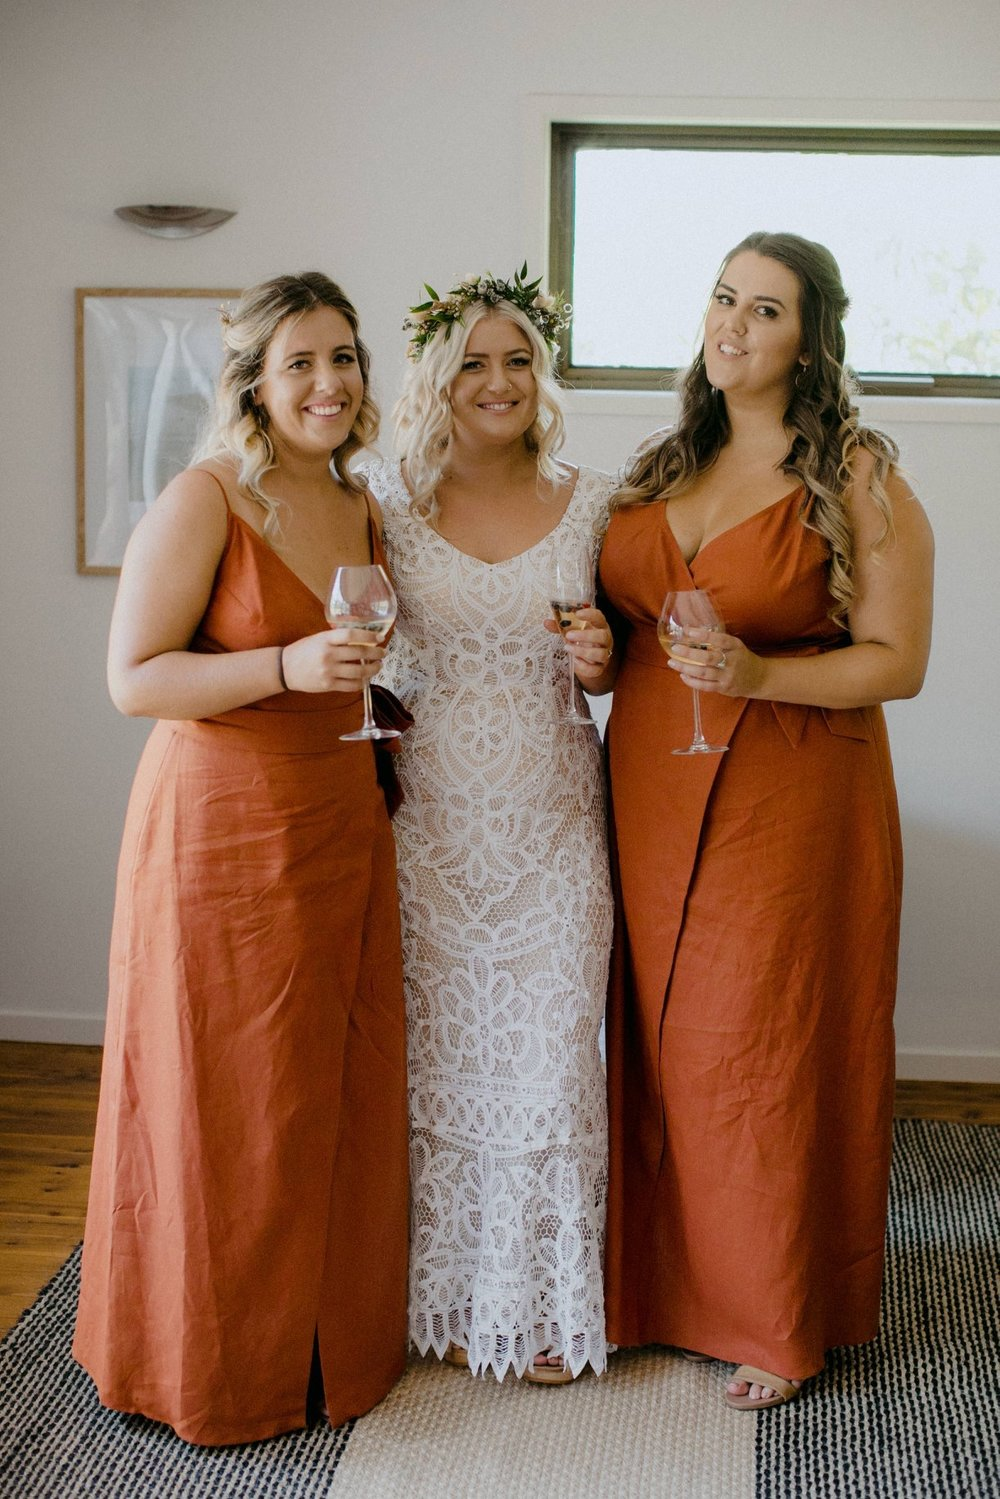 Bride with bridesmaids in paprika linen dresses